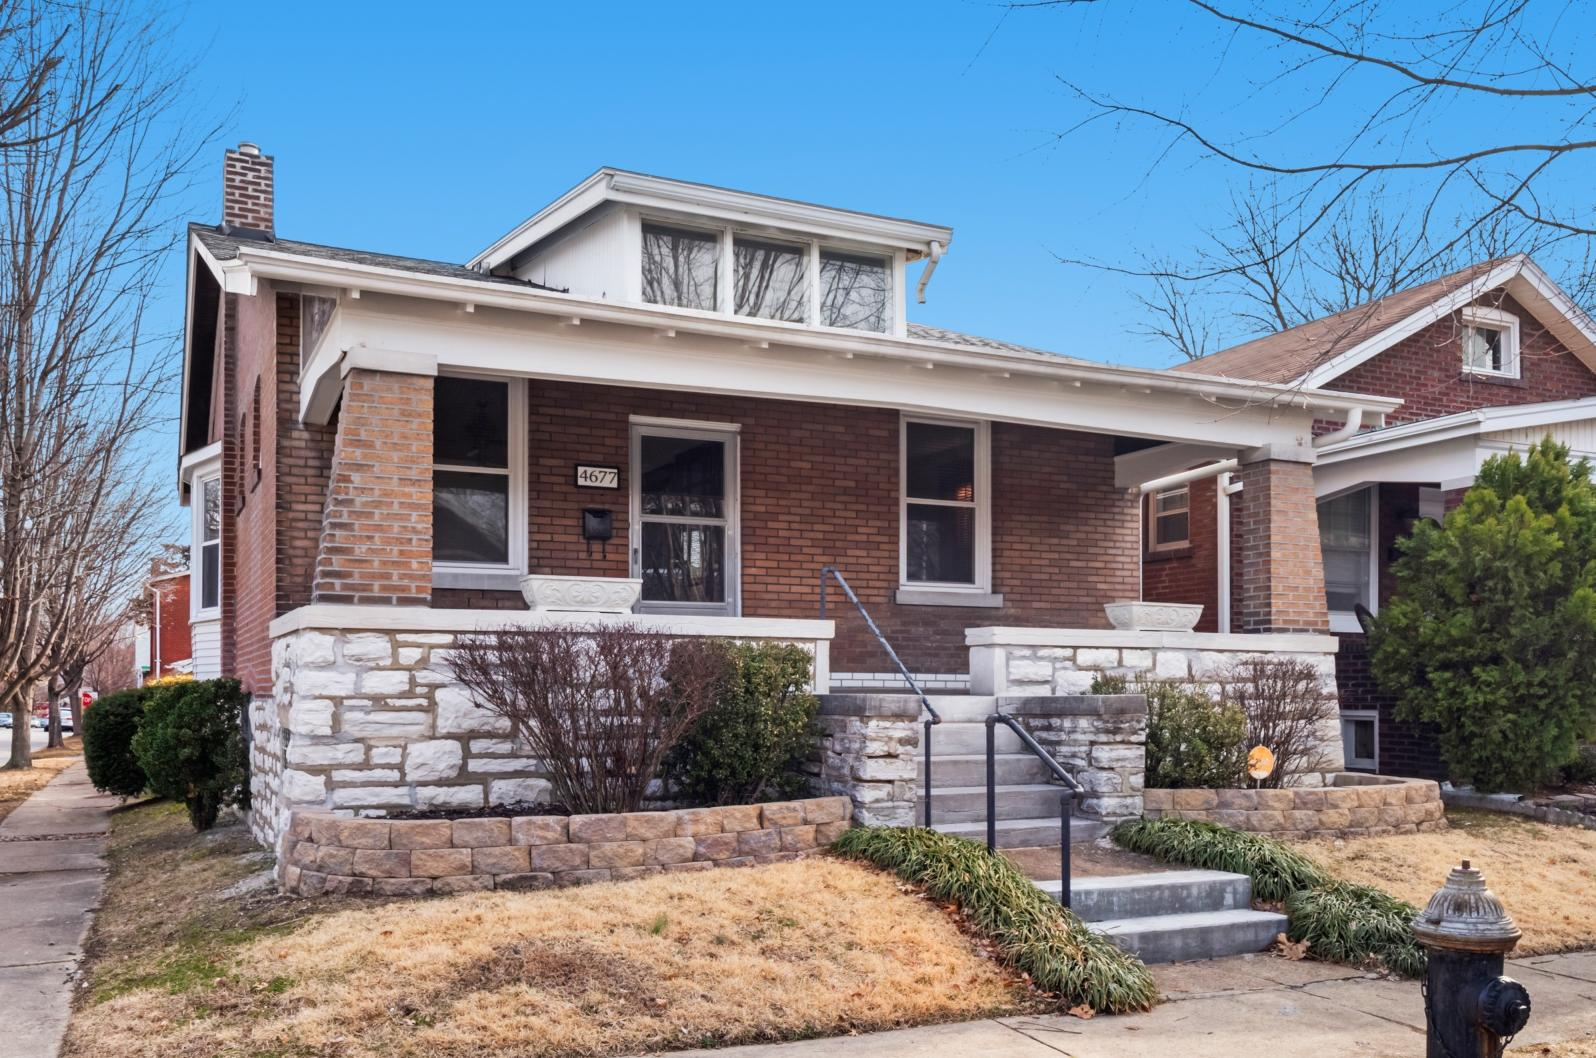 Photo of 4677 Rosa Ave St Louis MO 63116